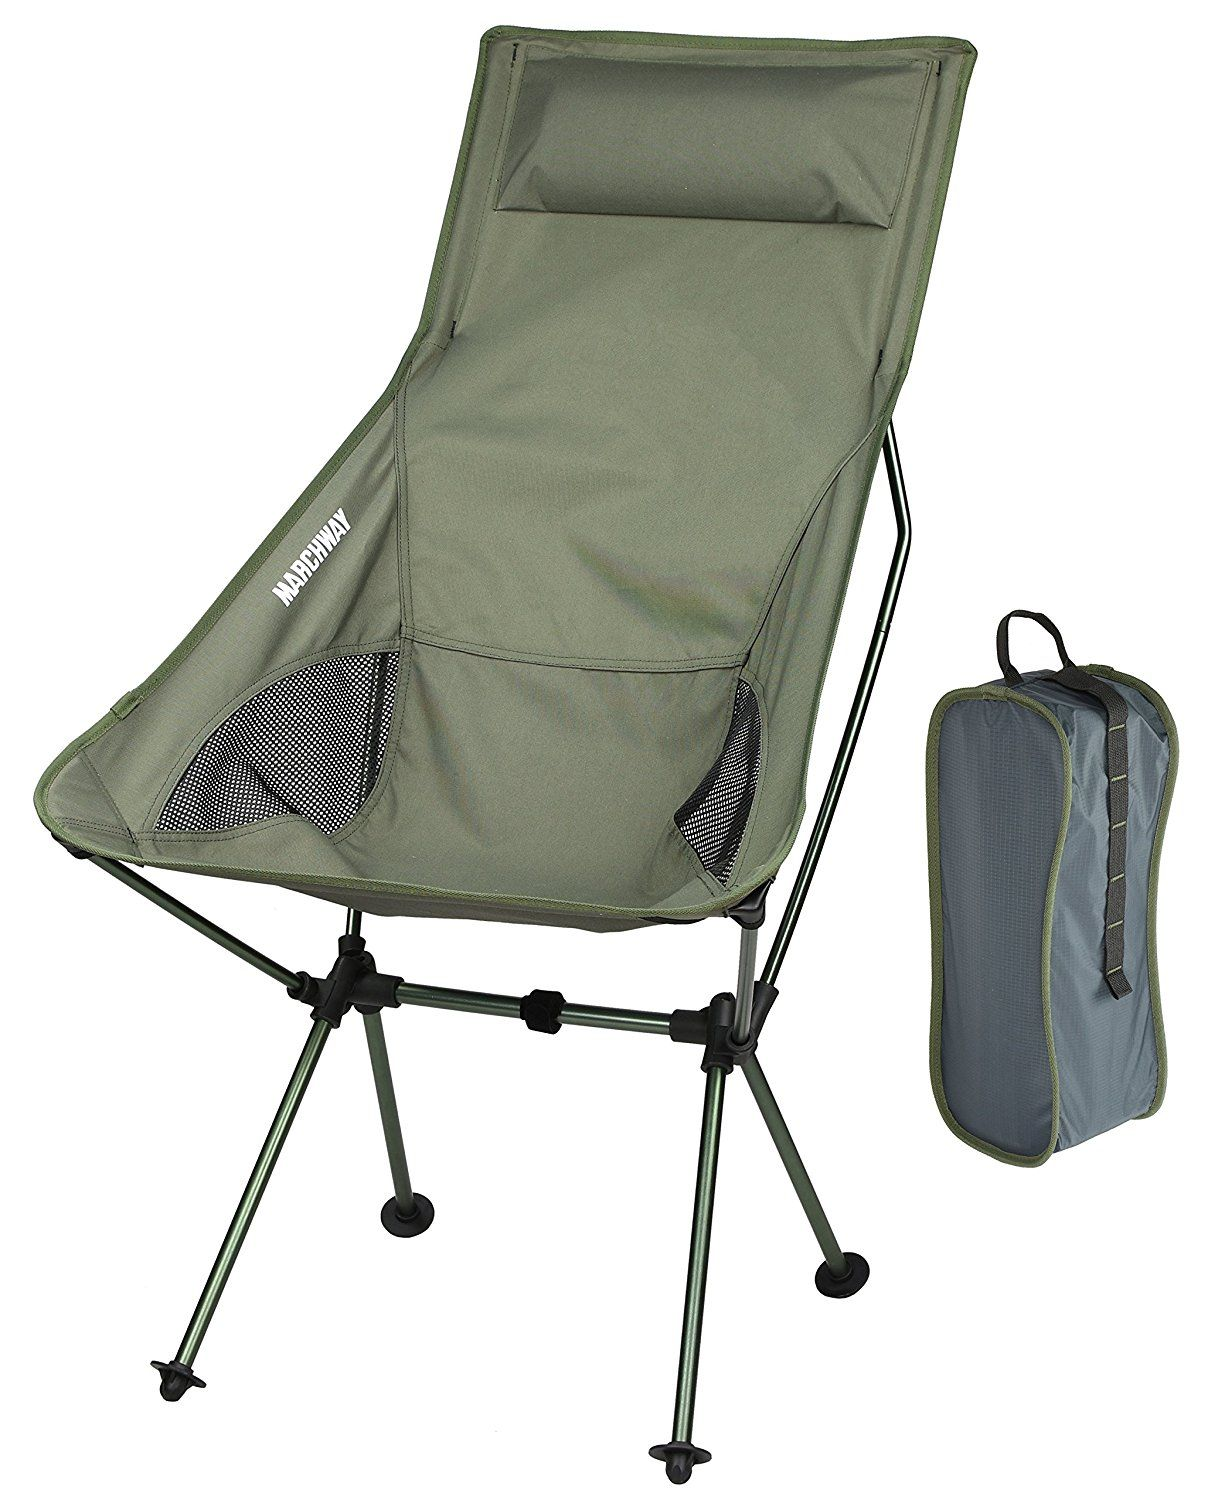 Lightweight camping chairs - Marchway Lightweight Portable Folding High Back Camping Chair With Pillow For Outdoor Sport And Travel